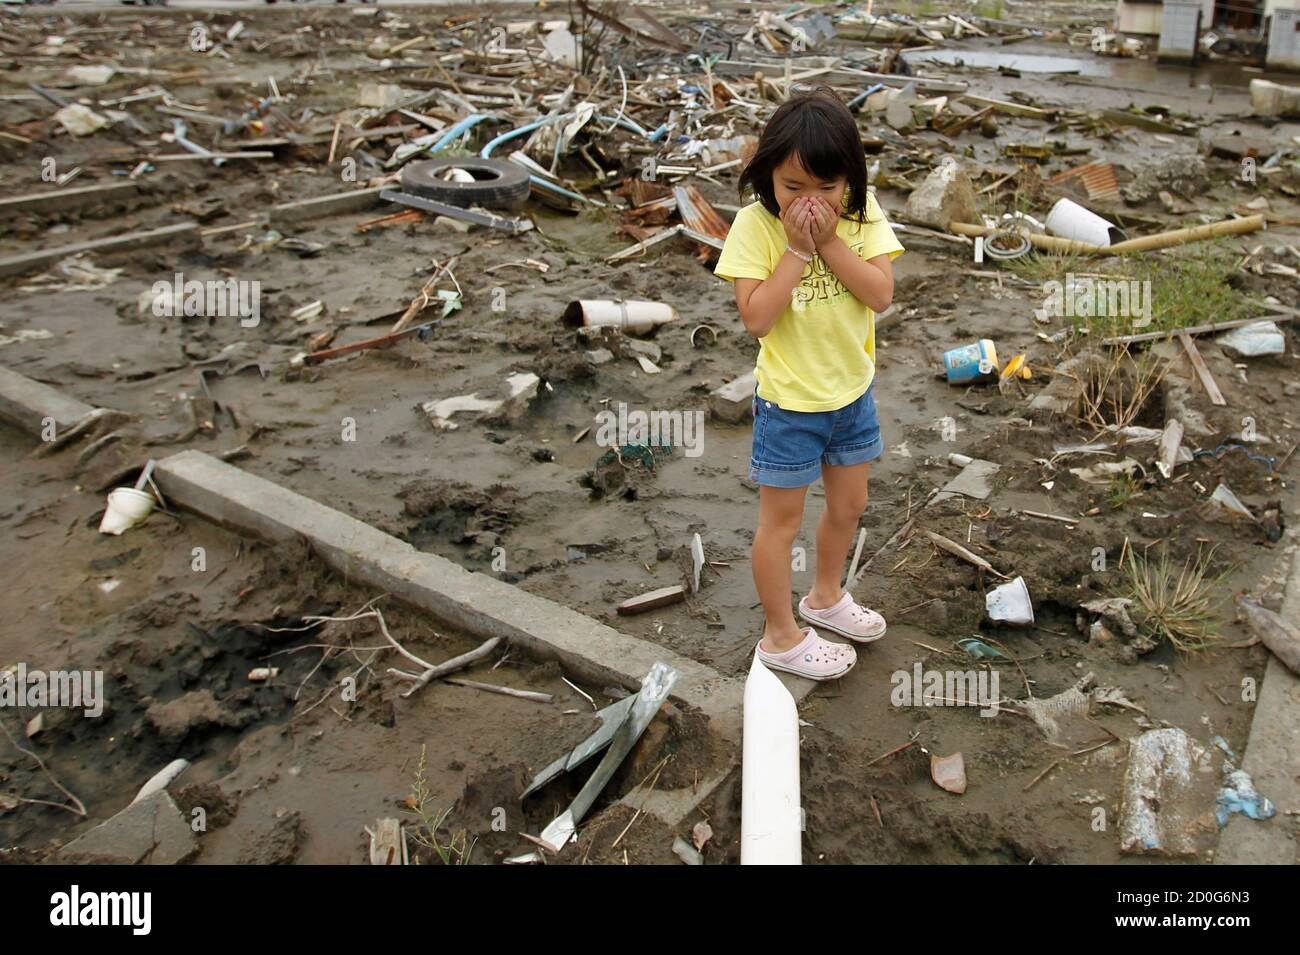 Wakana Kumagai 6 Reacts As She Visits The Spot Where Her House Washed Away By The A wife washed away side quest | the legend of zelda: alamy